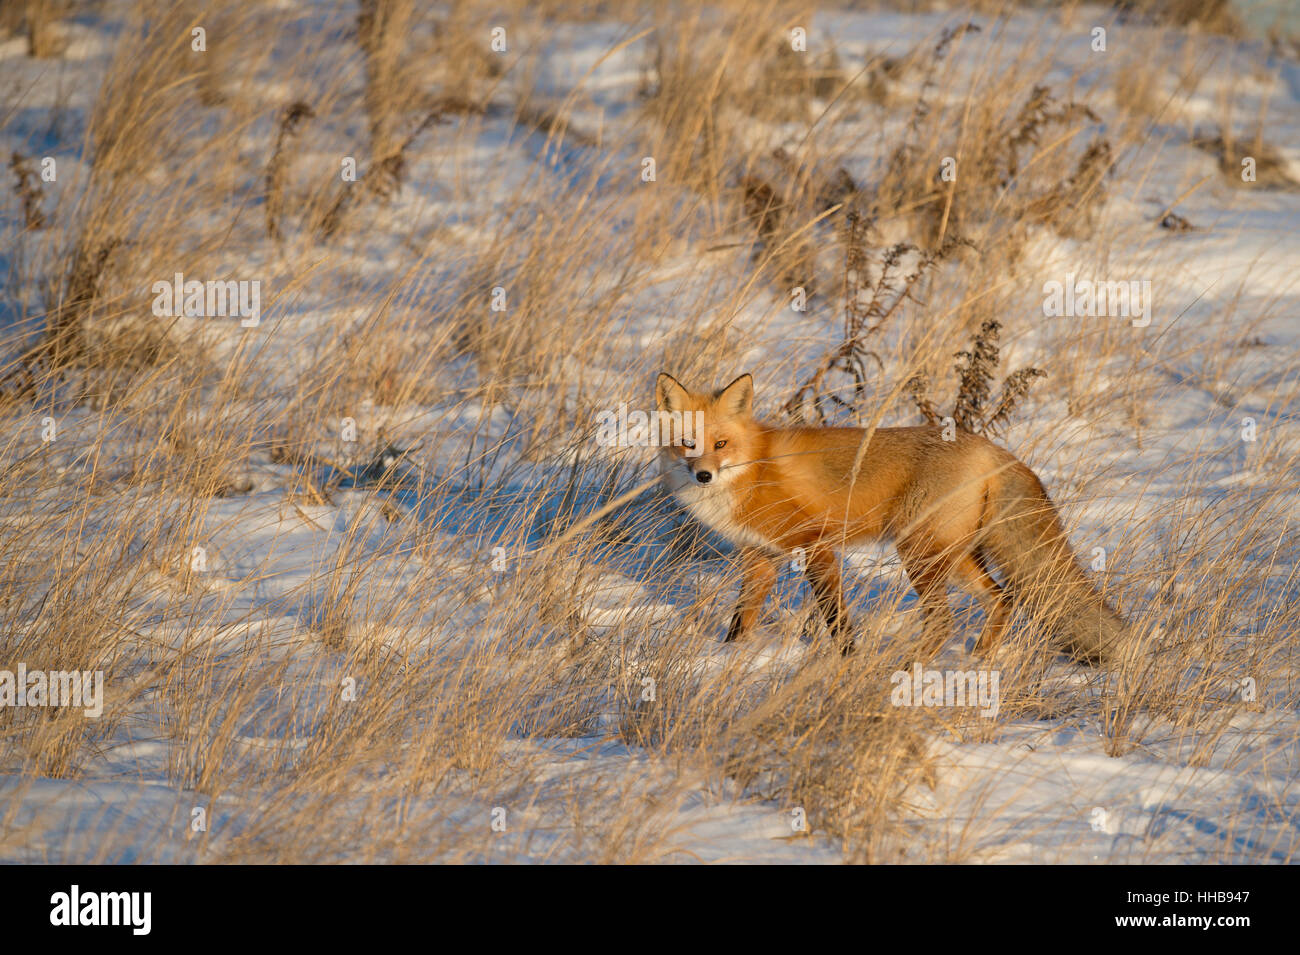 The late evening sun was just right as the Red Fox stood in the tall dune grass. Taken along the coast in southern - Stock Image